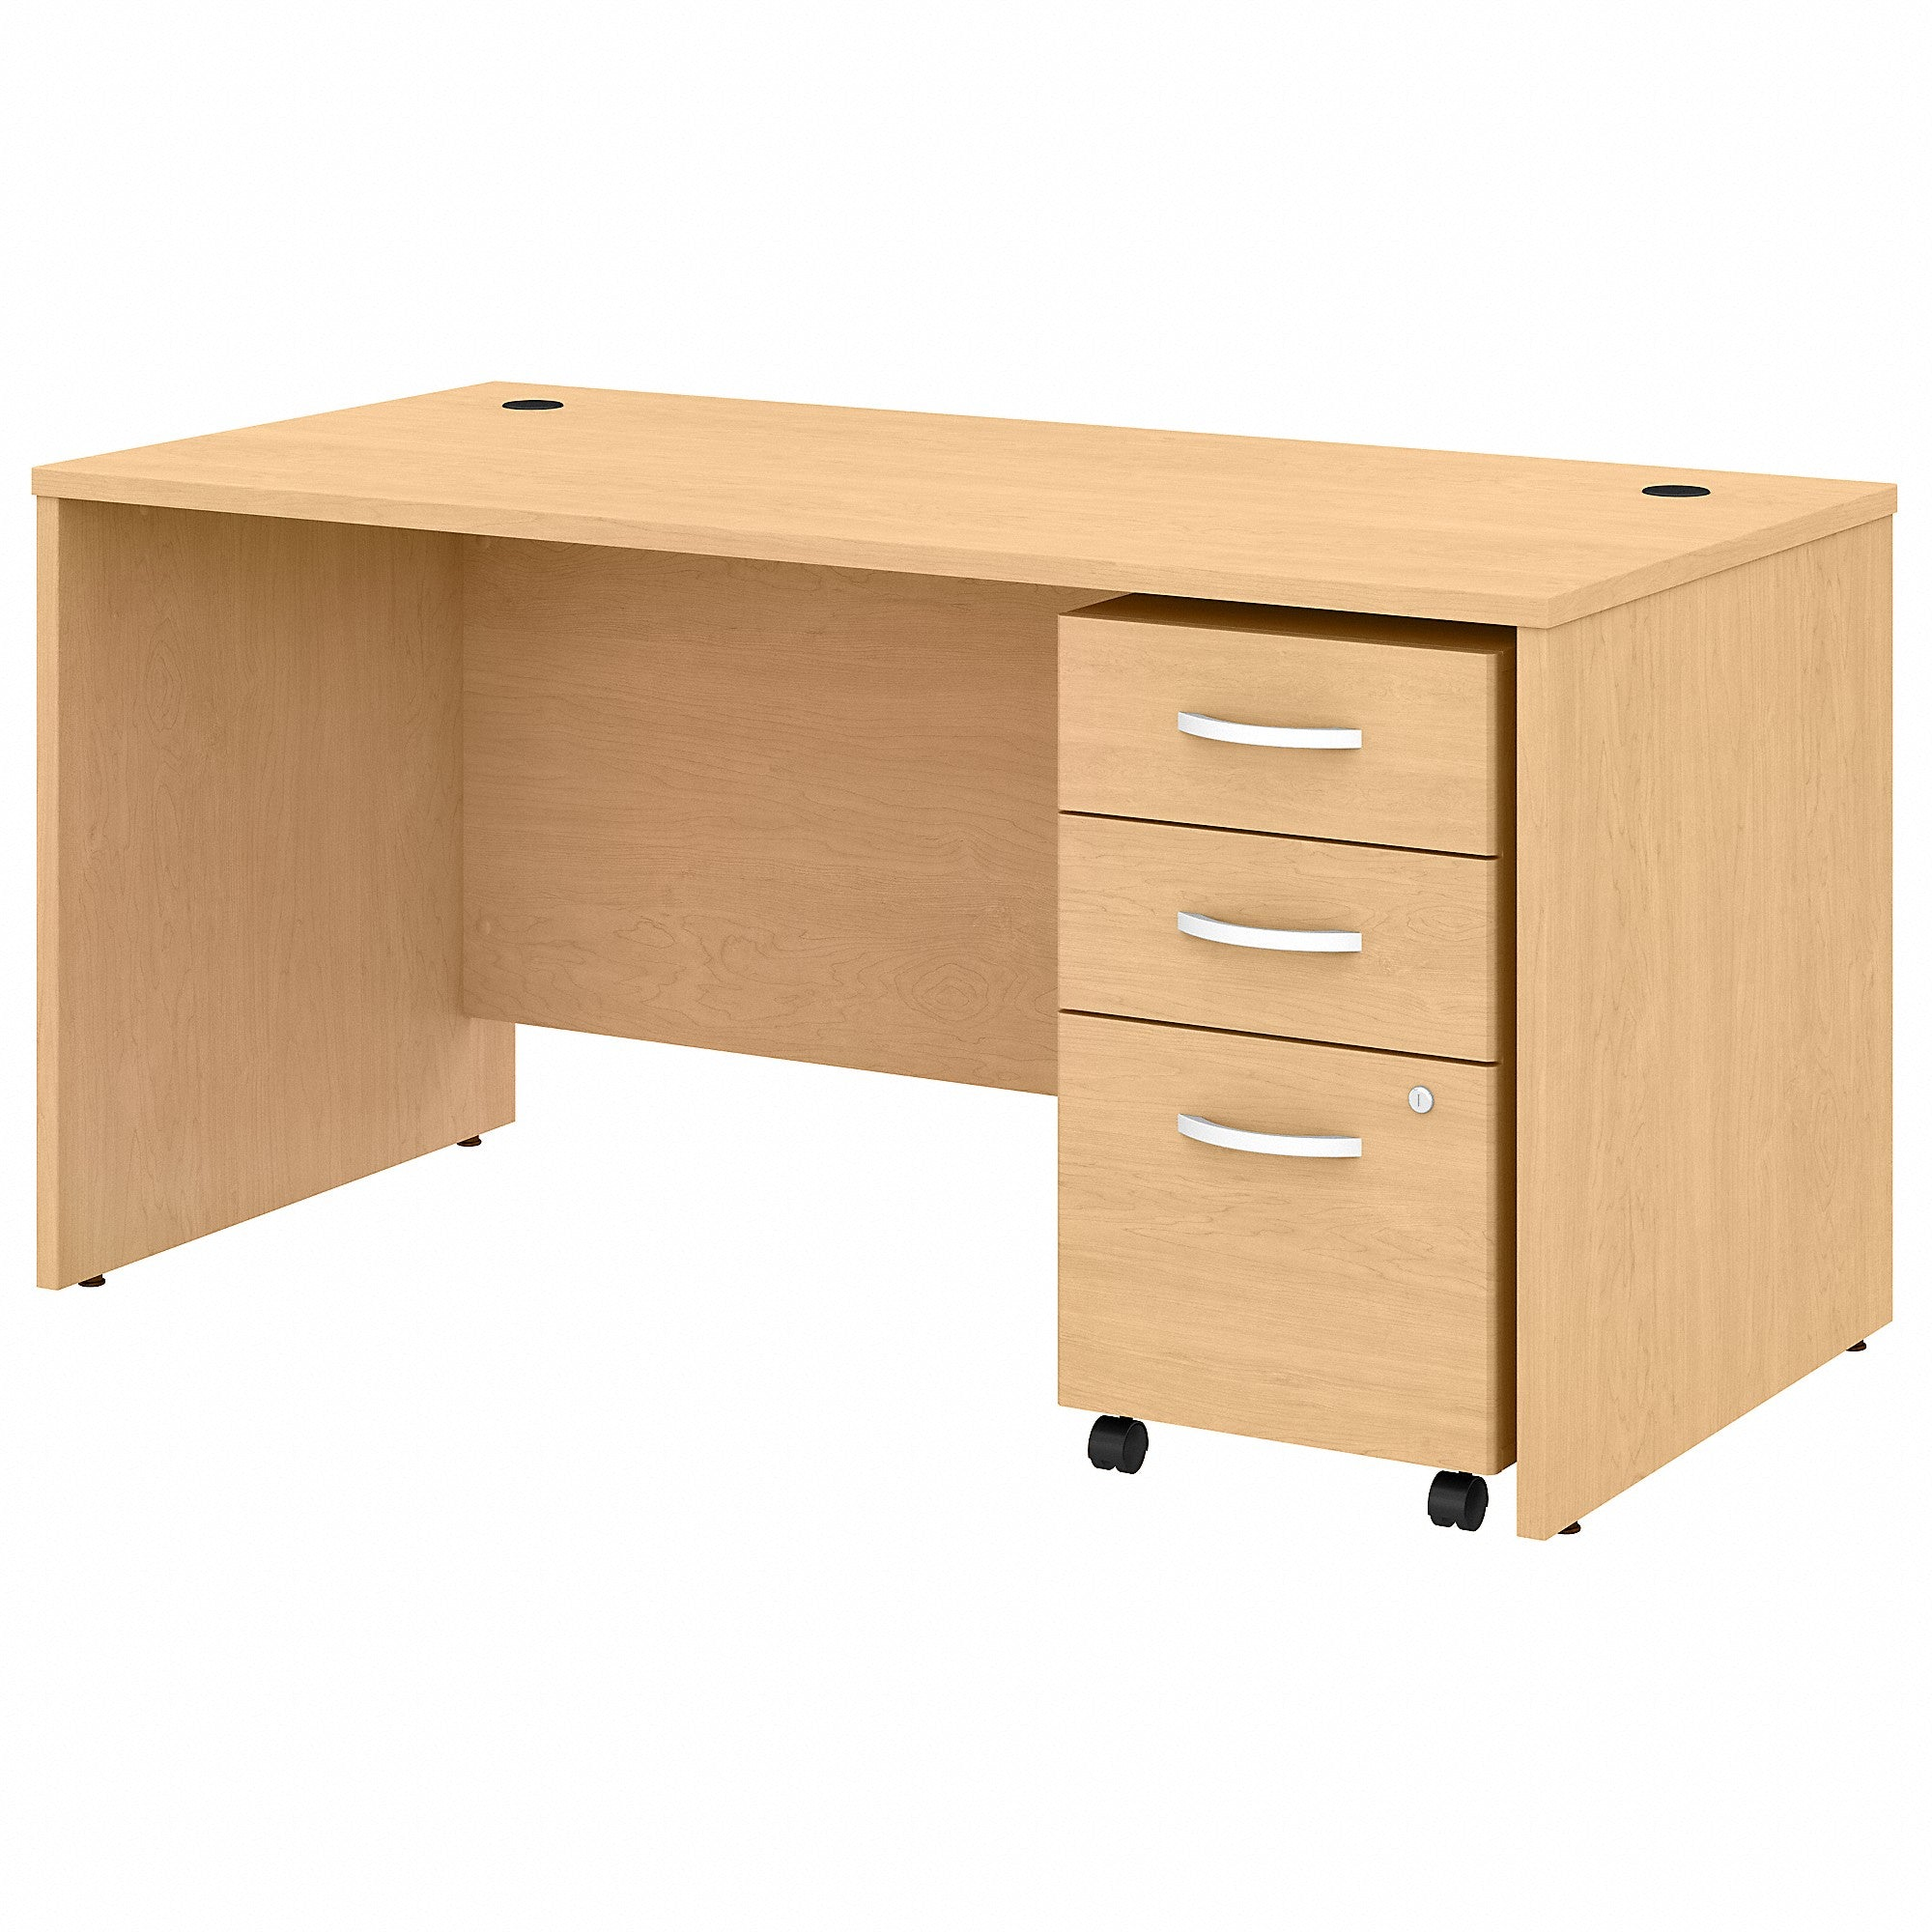 Studio C 60W x 30D Office Desk with Mobile File Cabinet